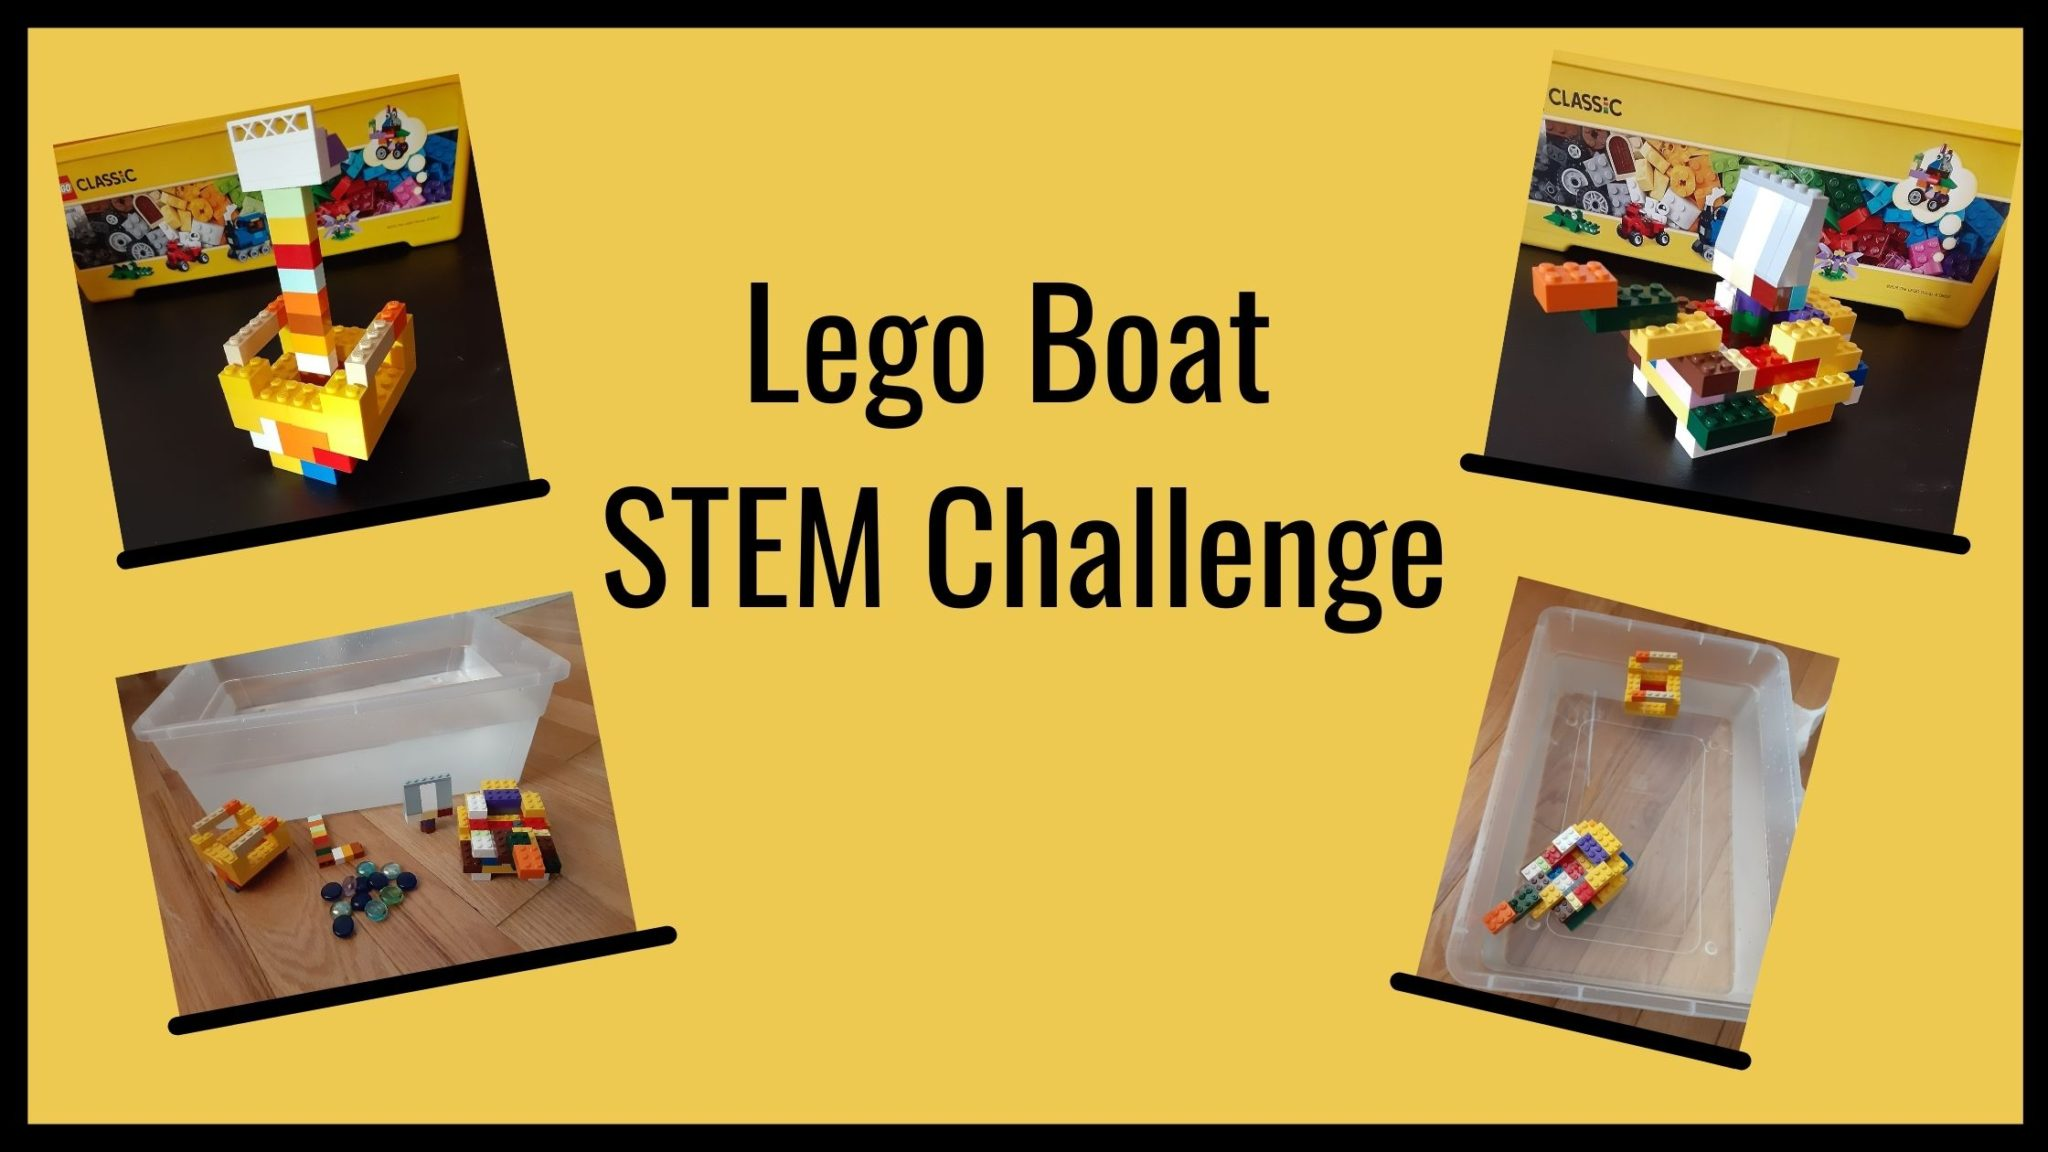 Simple Lego Boat Stem Challenge To Make Learning Fun The Secret Life Of Homeschoolers